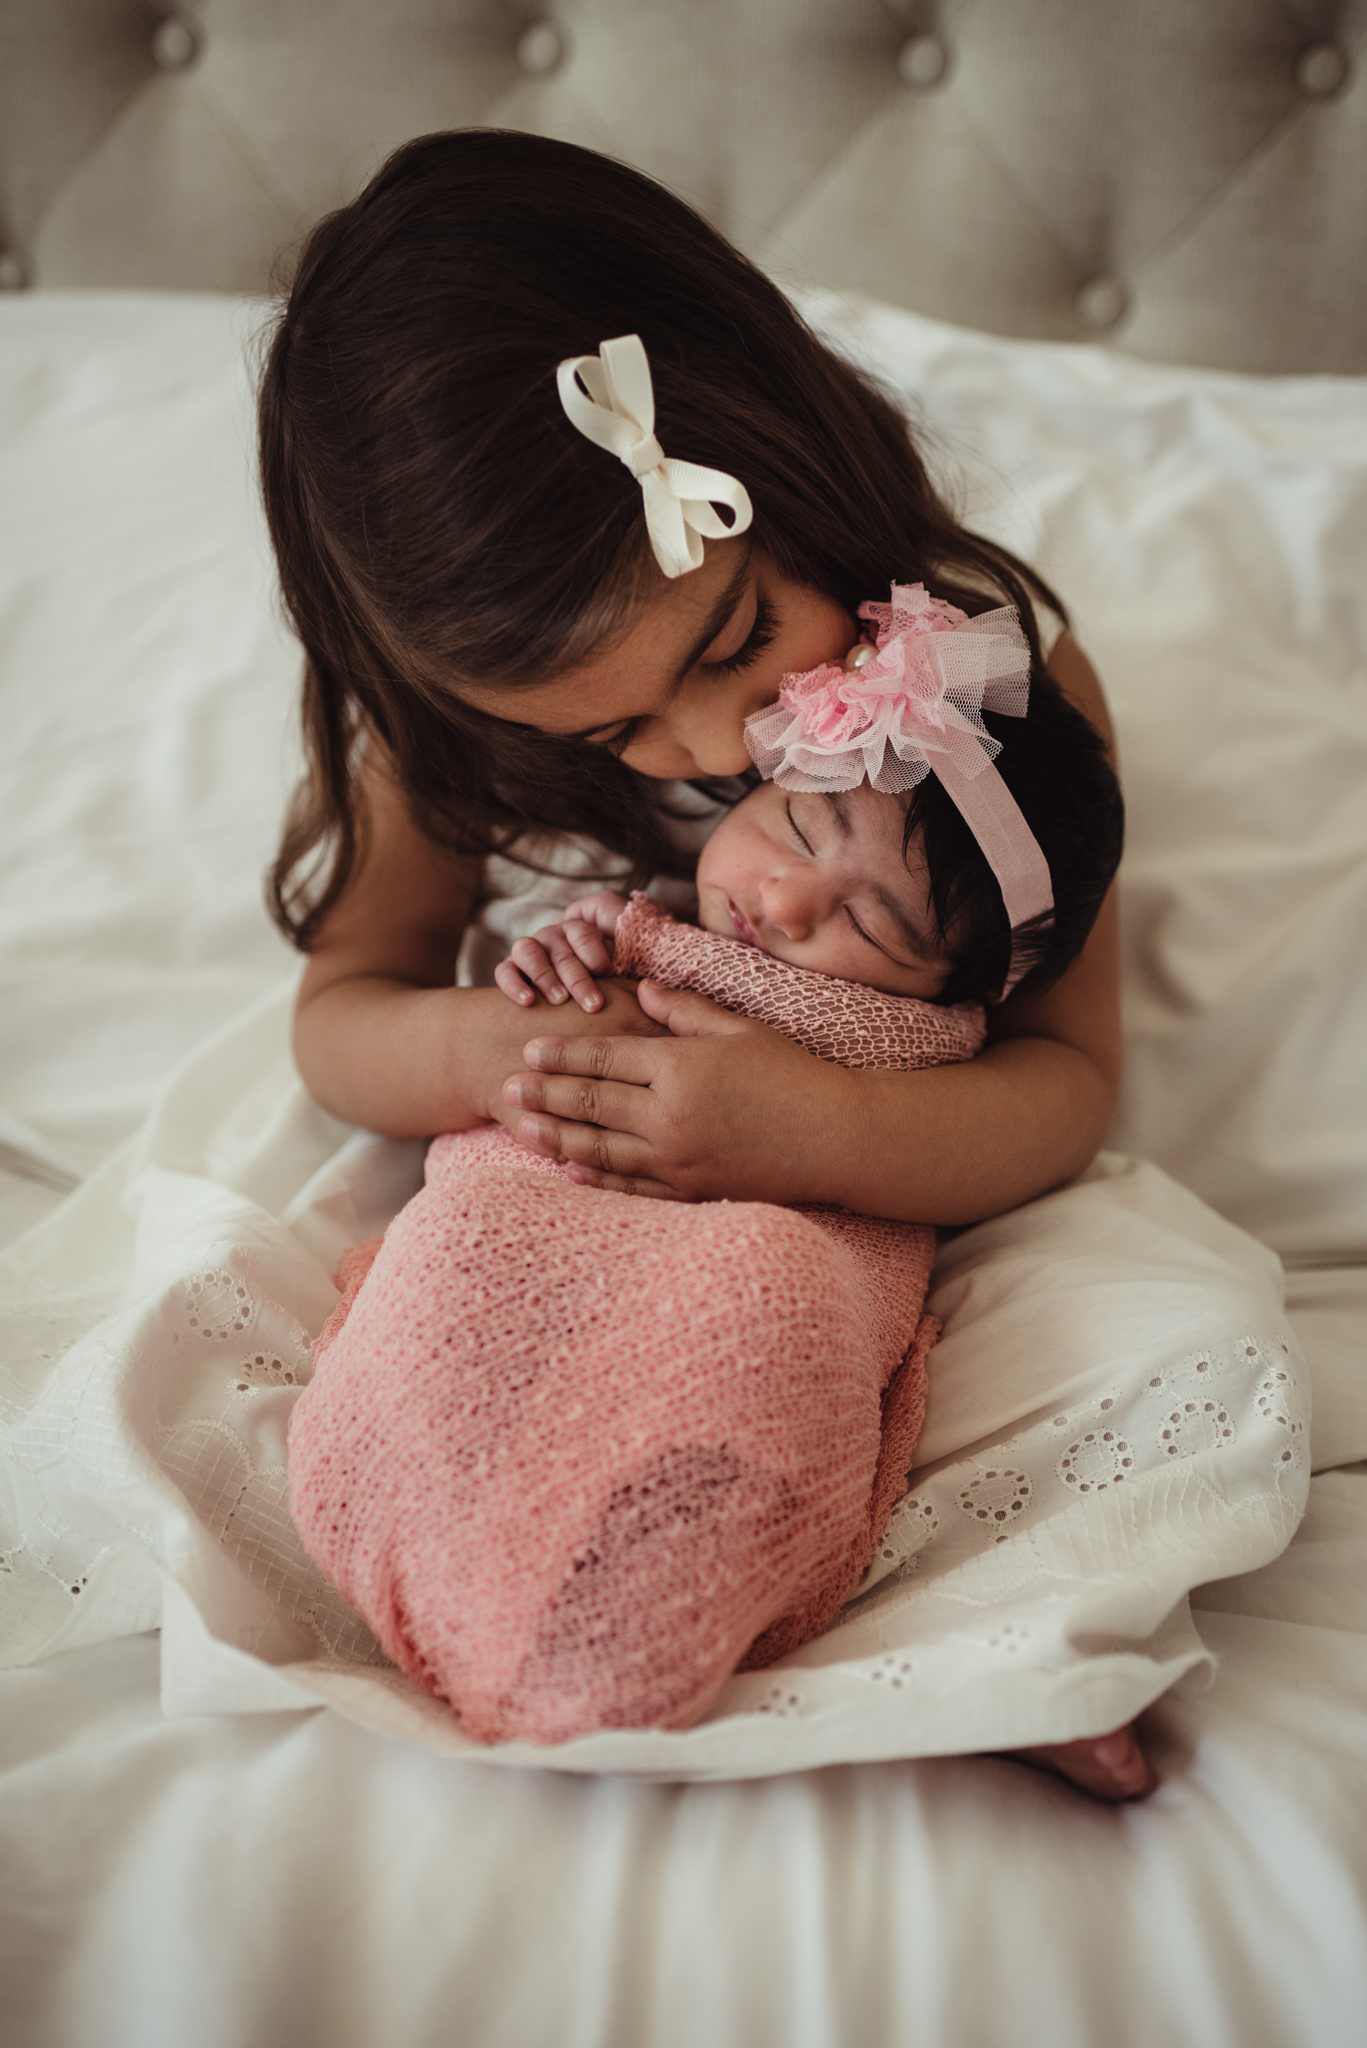 Older sister kisses her new baby sister during their lifestyle newborn session with Rose Trail Images in Raleigh, North Carolina.